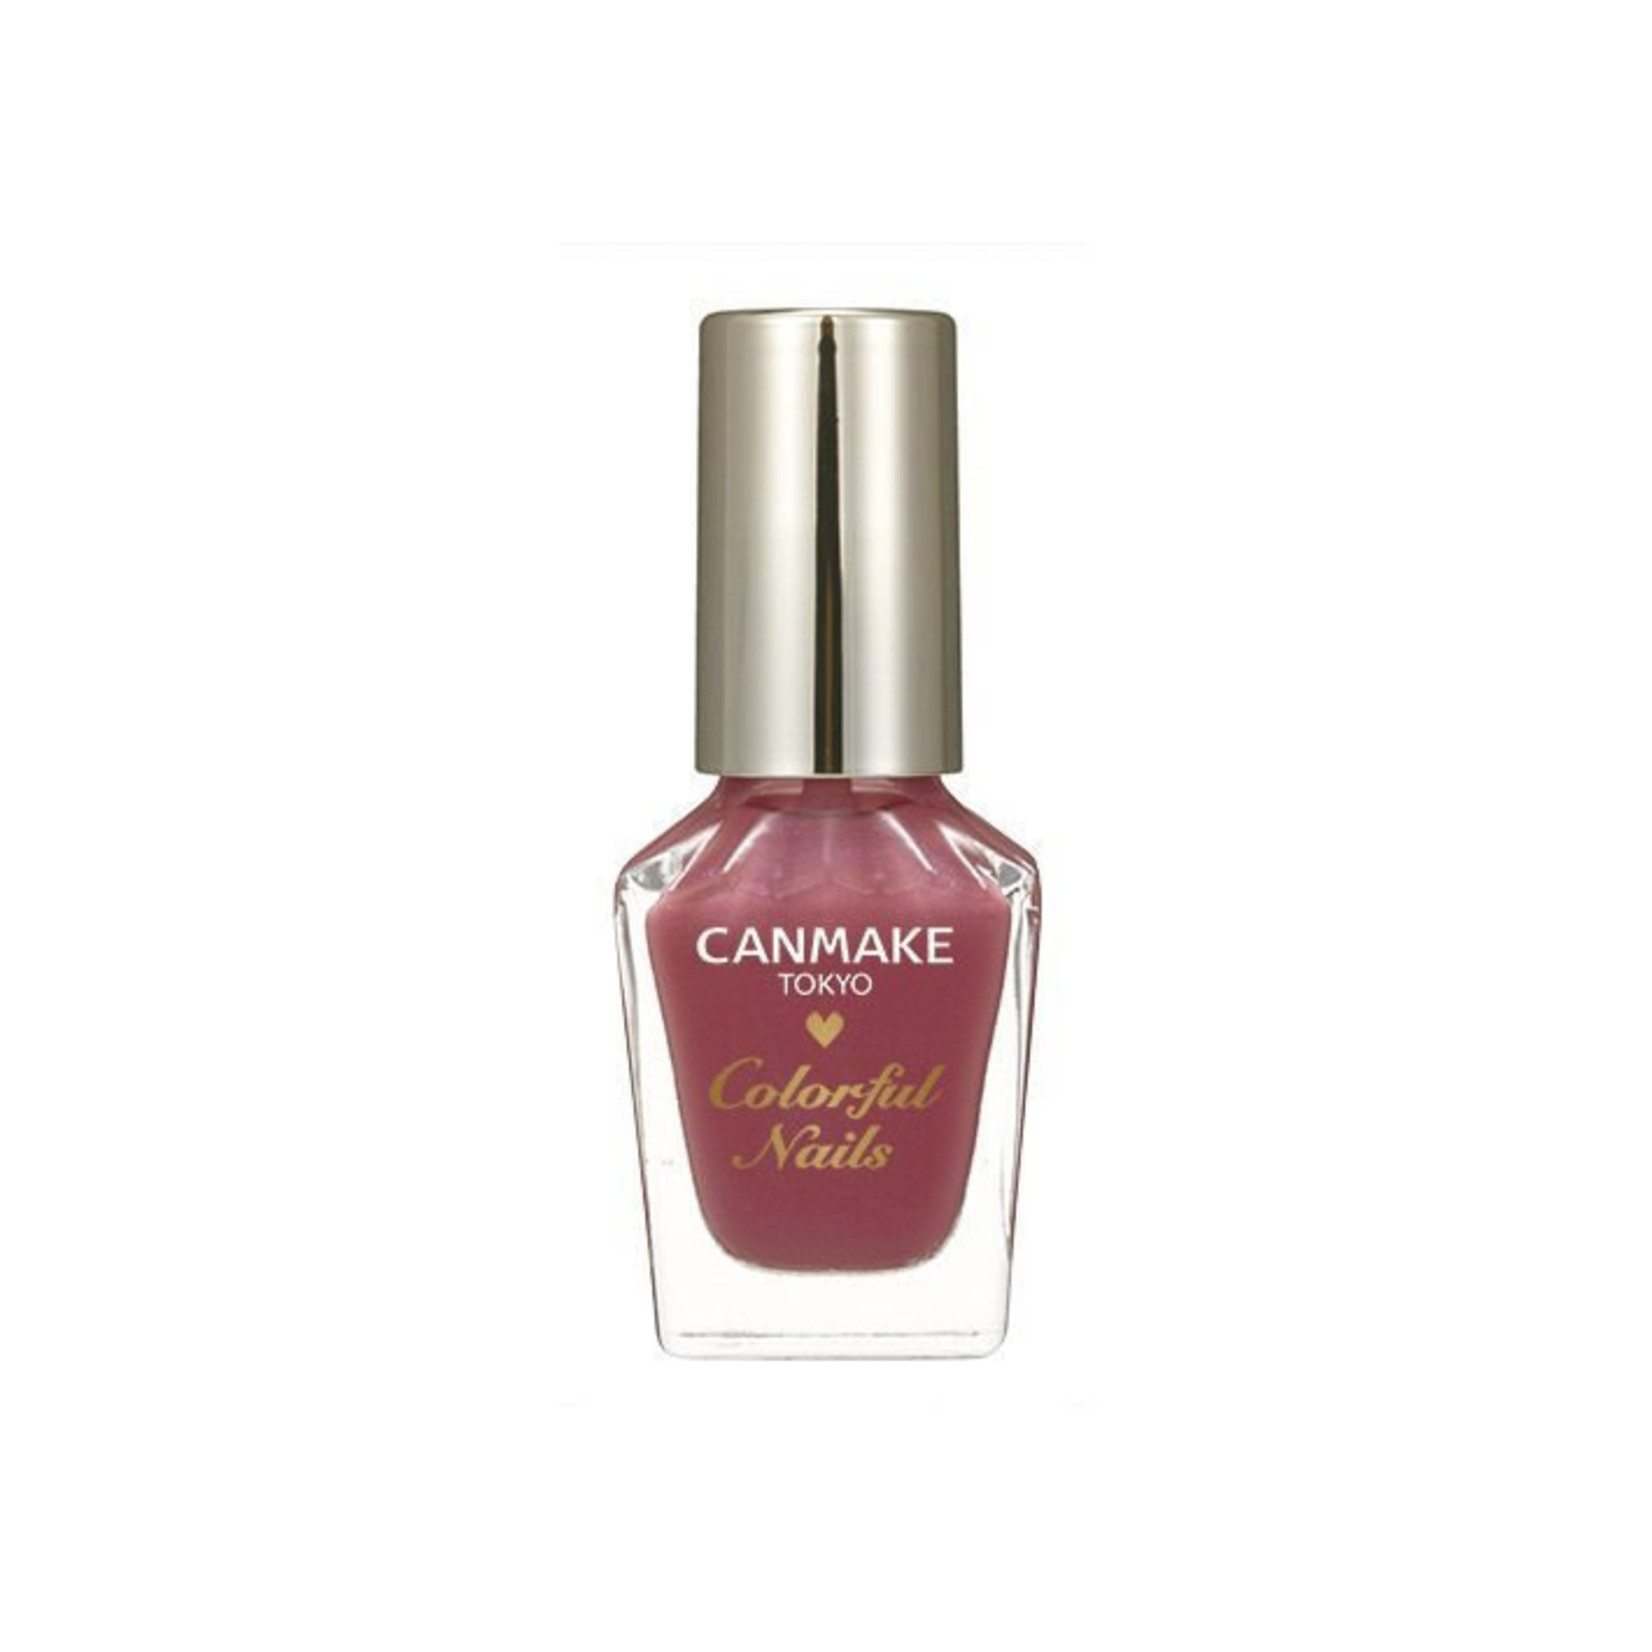 Canmake Colorful Nails N06 Raspberry Milk